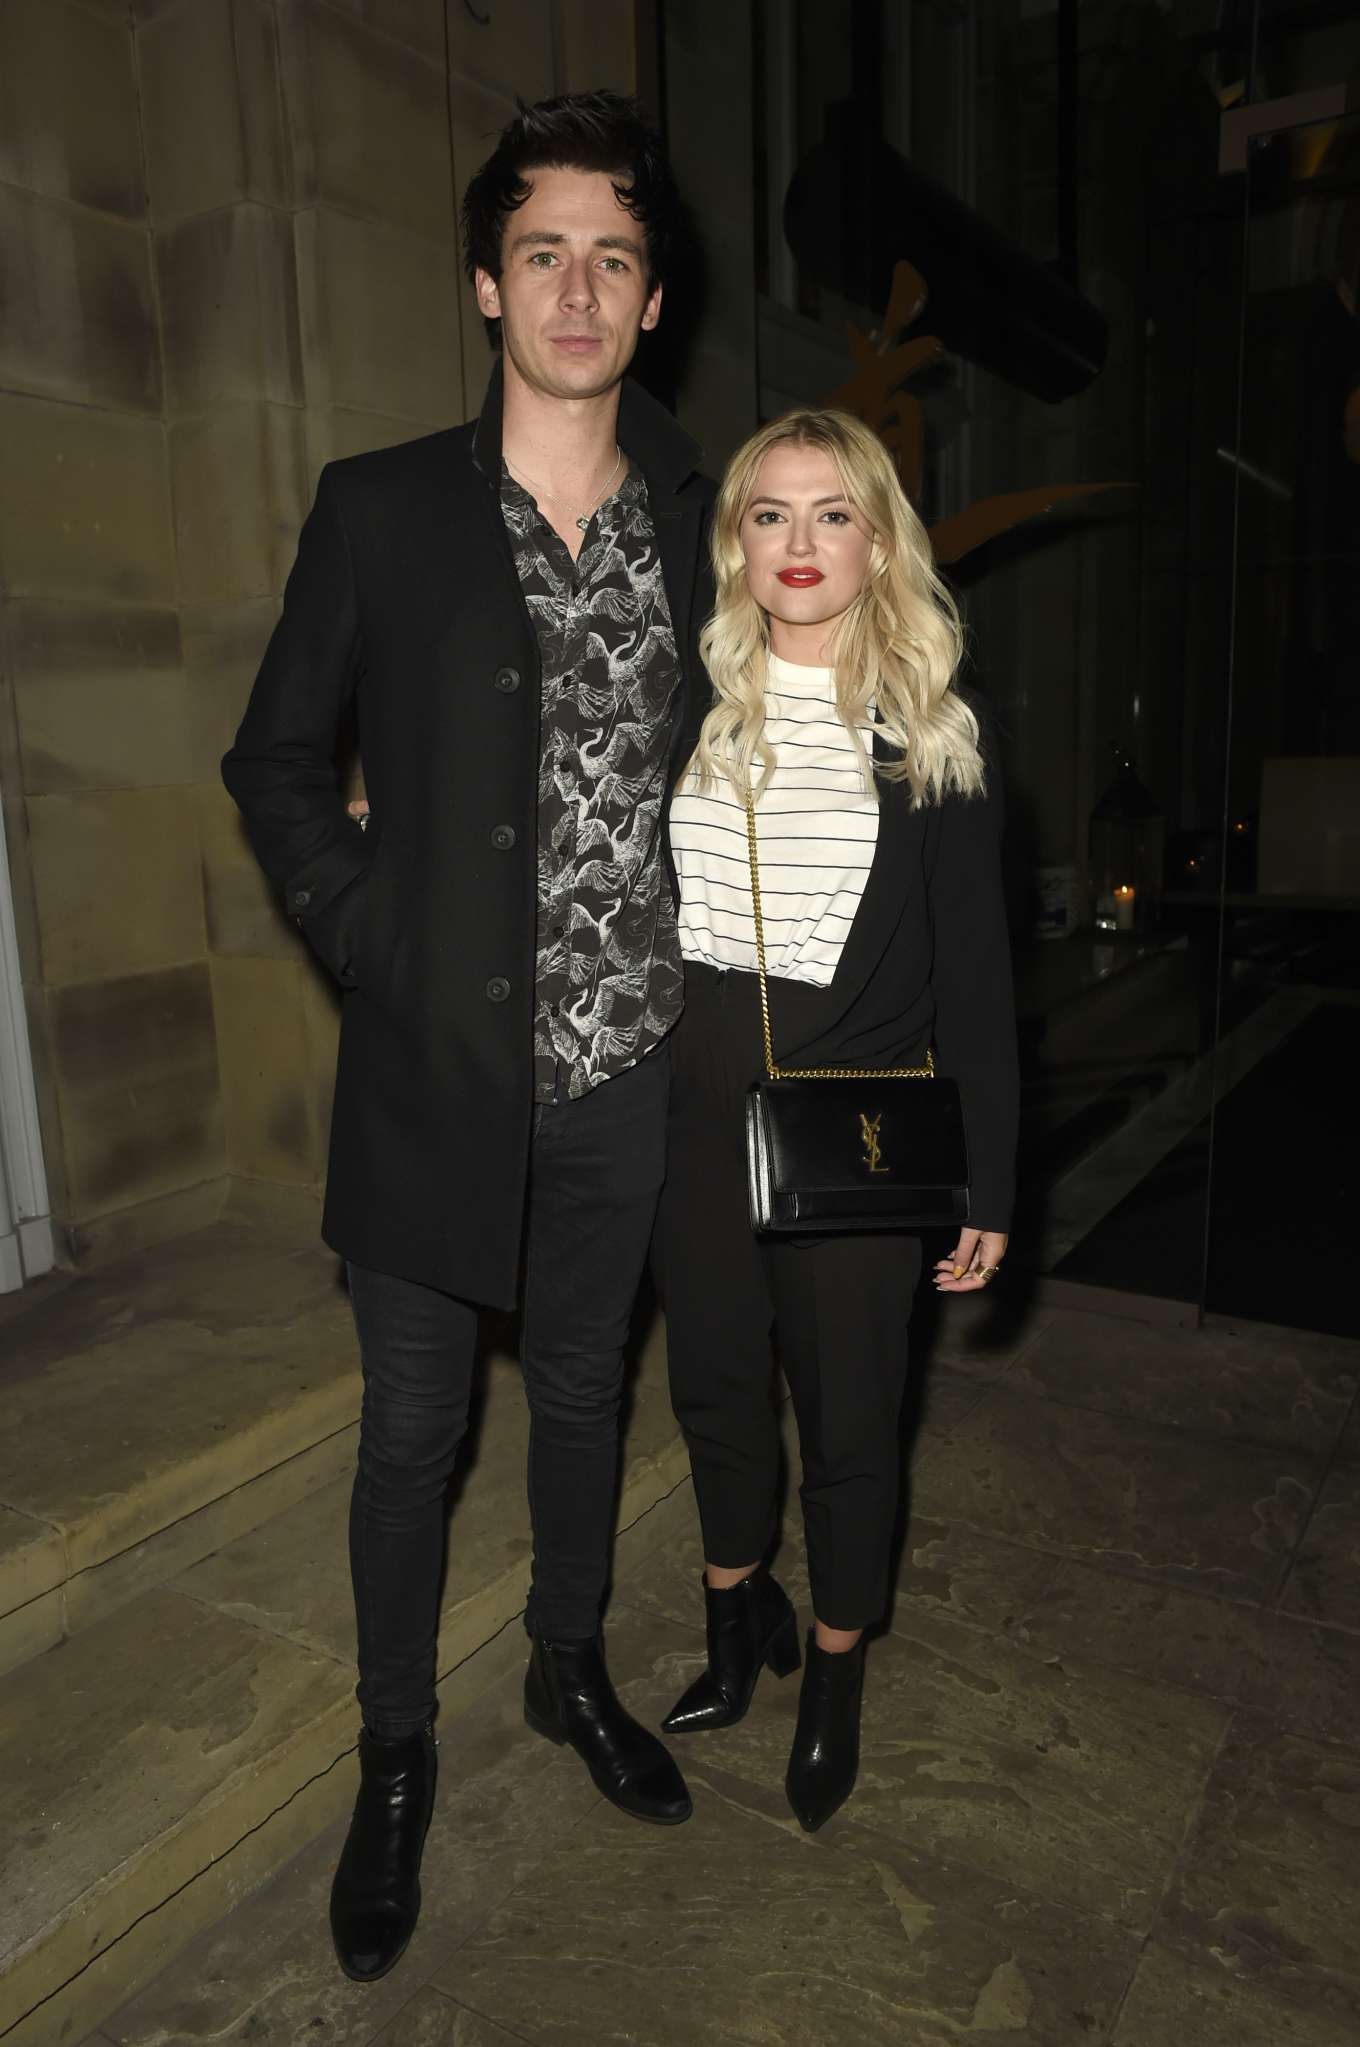 Lucy Fallon And Her Boyfriend Tom Leech At Peter Street Kitchen Restaurant In Manchester Gotceleb